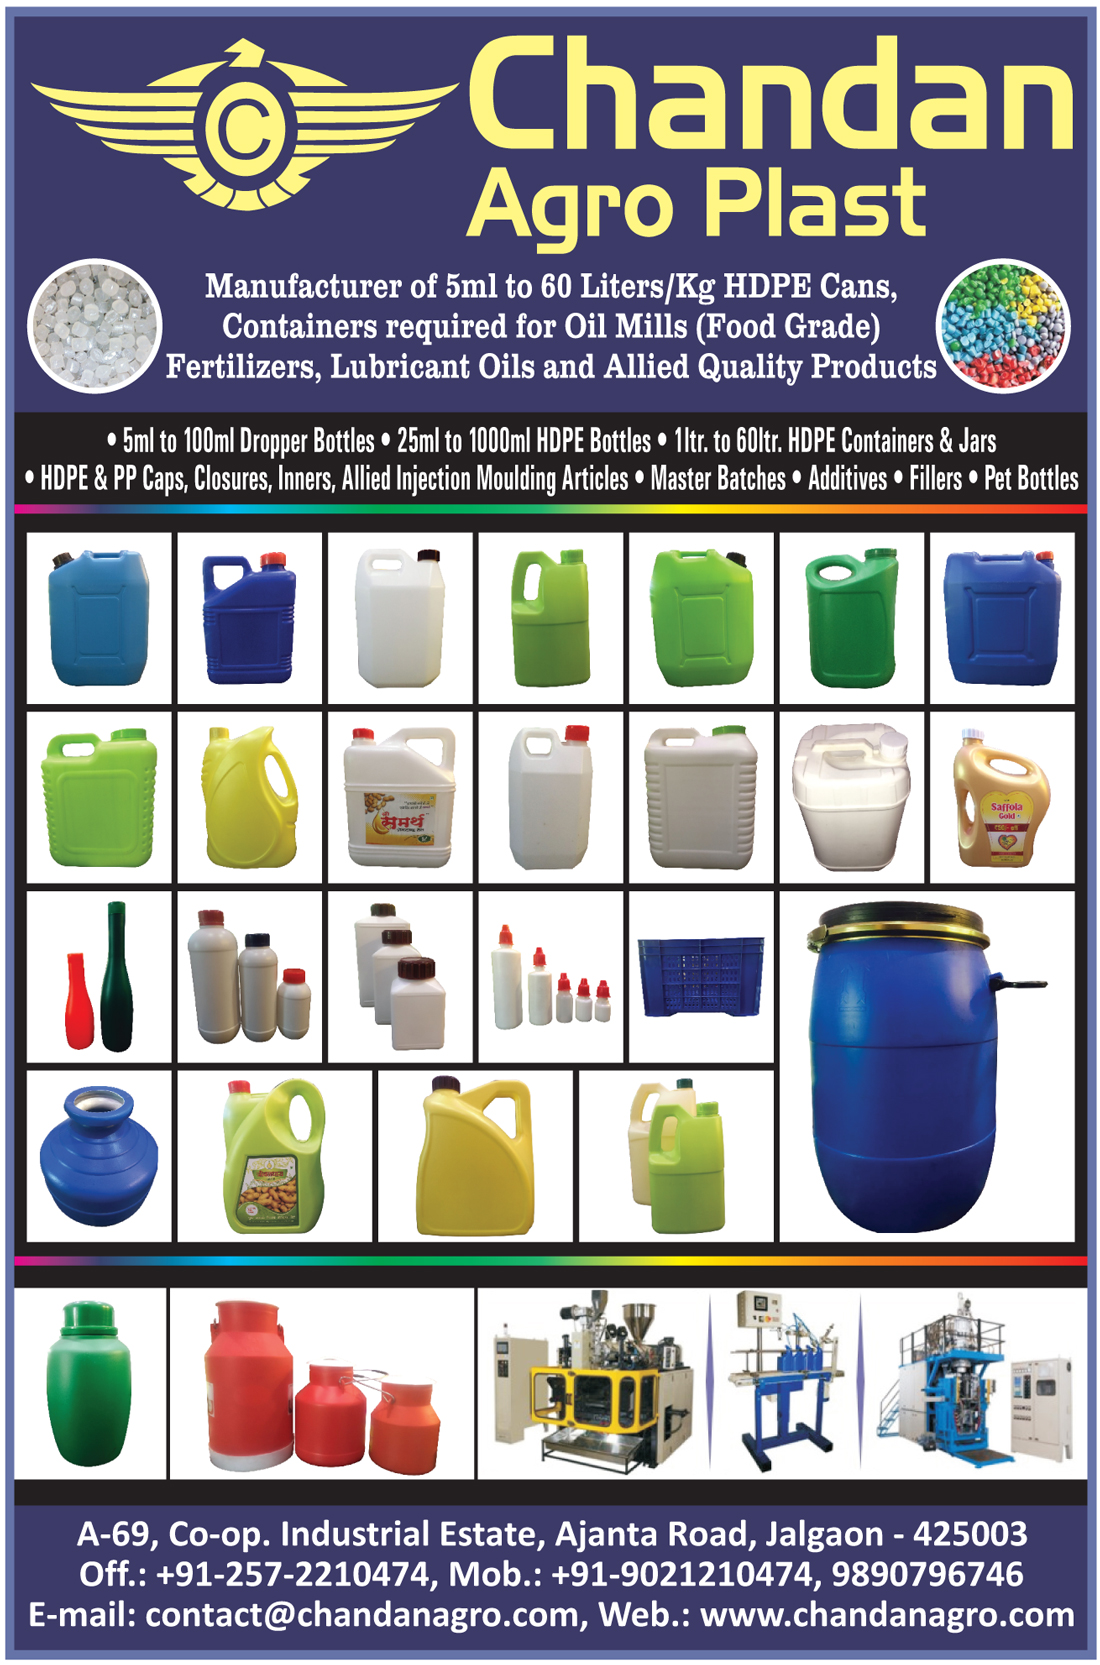 HDPE Cans, Dropper Bottles, Oil Mill Containers, Fertilizer Containers, Lubricant Oil Containers, HDPE Bottles, HDPE Containers, HDPE Jars, HDPE Caps, PP Caps, HDPE Closures, PP Closures, HDPE Inners, PP Inners, Allied Injection Moulding Articles, Allied Injection Molding Articles, Master Batches, Additives, Fillers, Pet Bottles